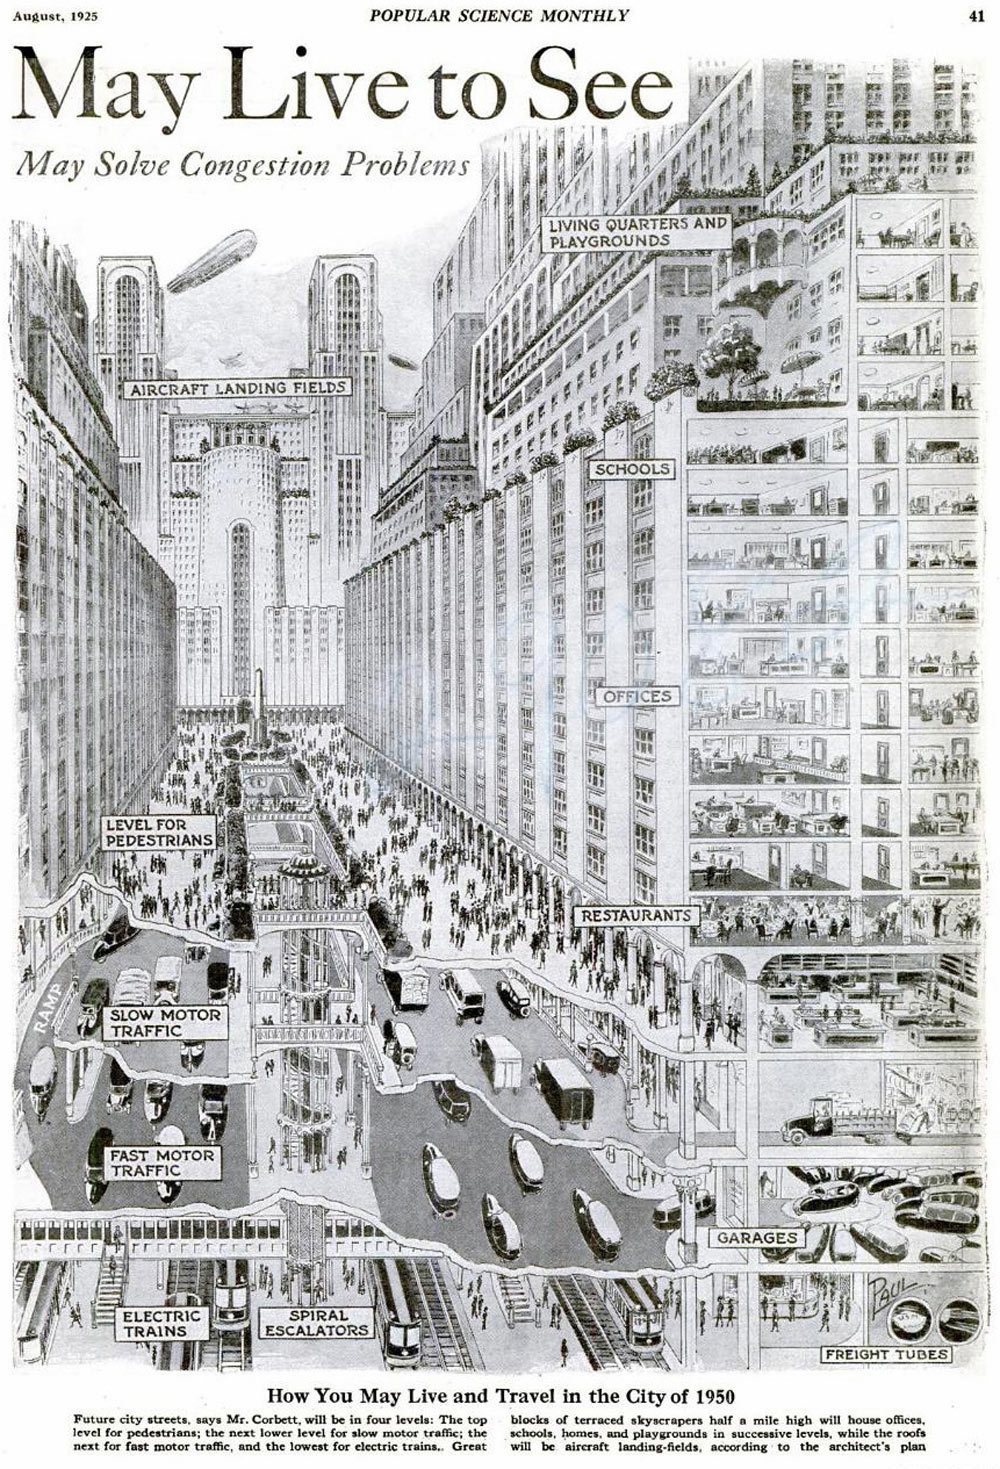 inothernews:  The World of 1950, as Envisioned in 1925.  via vintagefuture